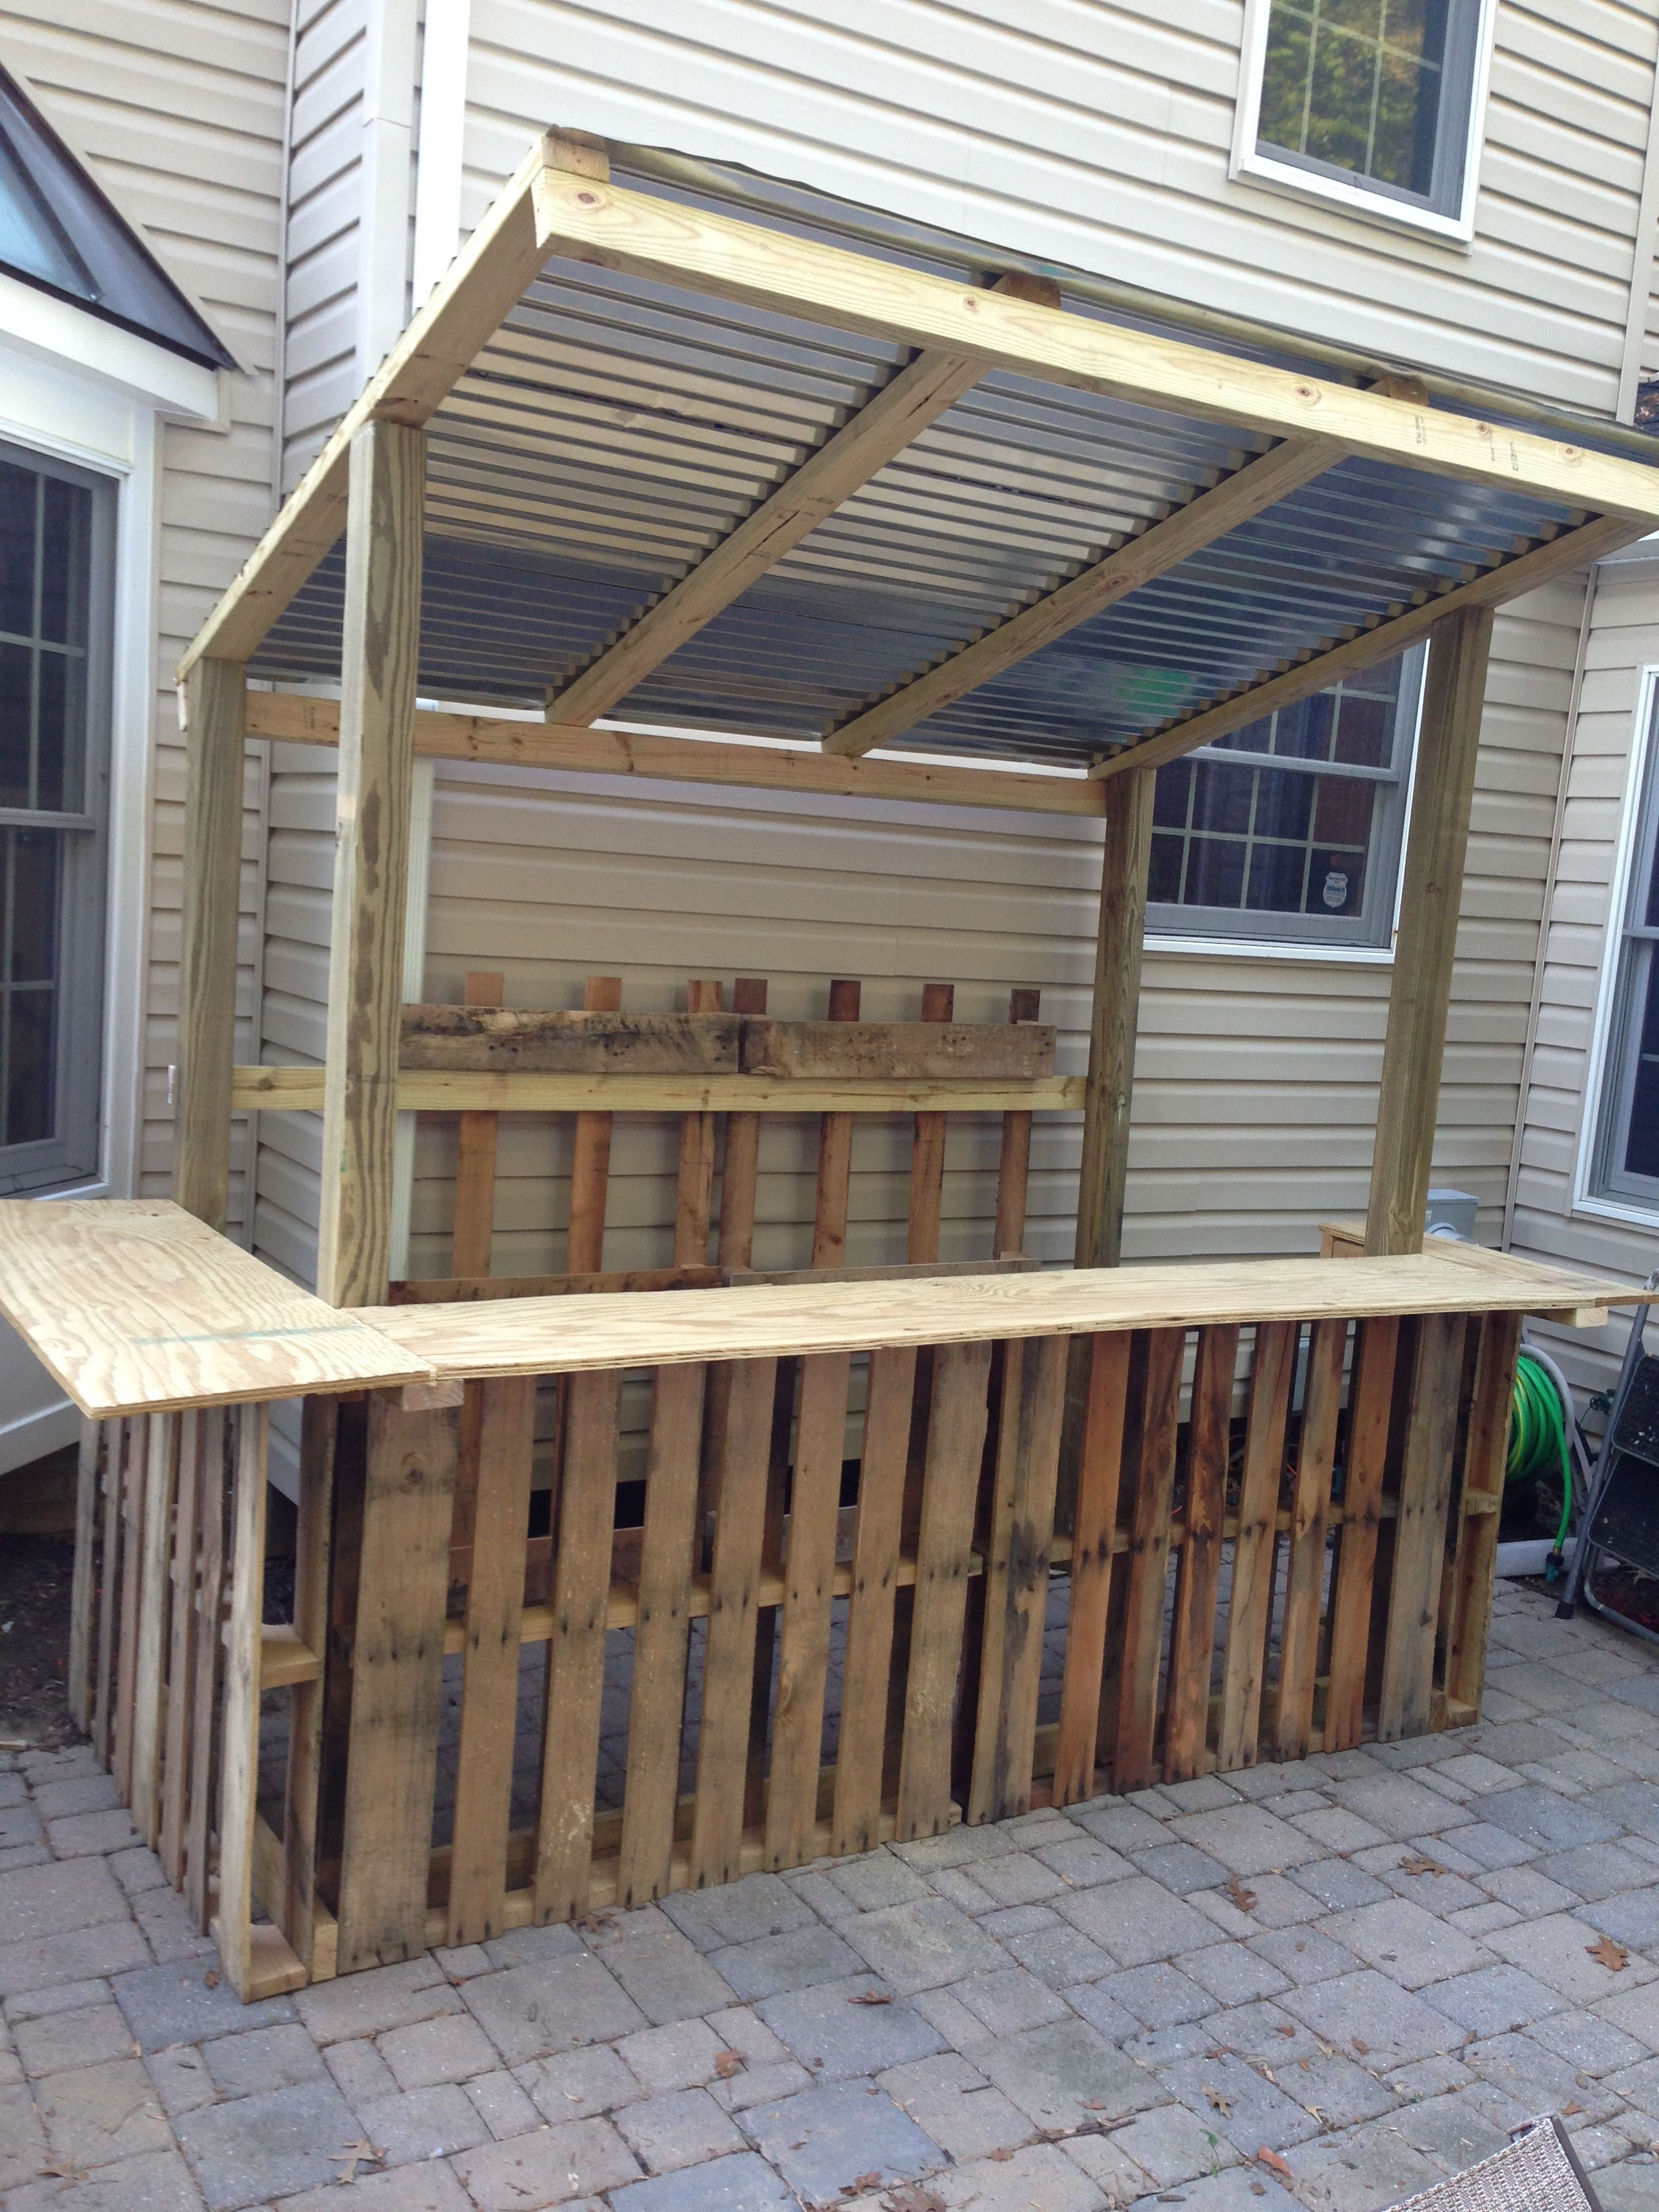 Construction Is Complete Base Made With 3 5 Pallets Rear Wall Is Two More Pallets And 2x4s Bar Is 3 4 Meuble Jardin Meuble Jardin Palette Mobilier De Salon